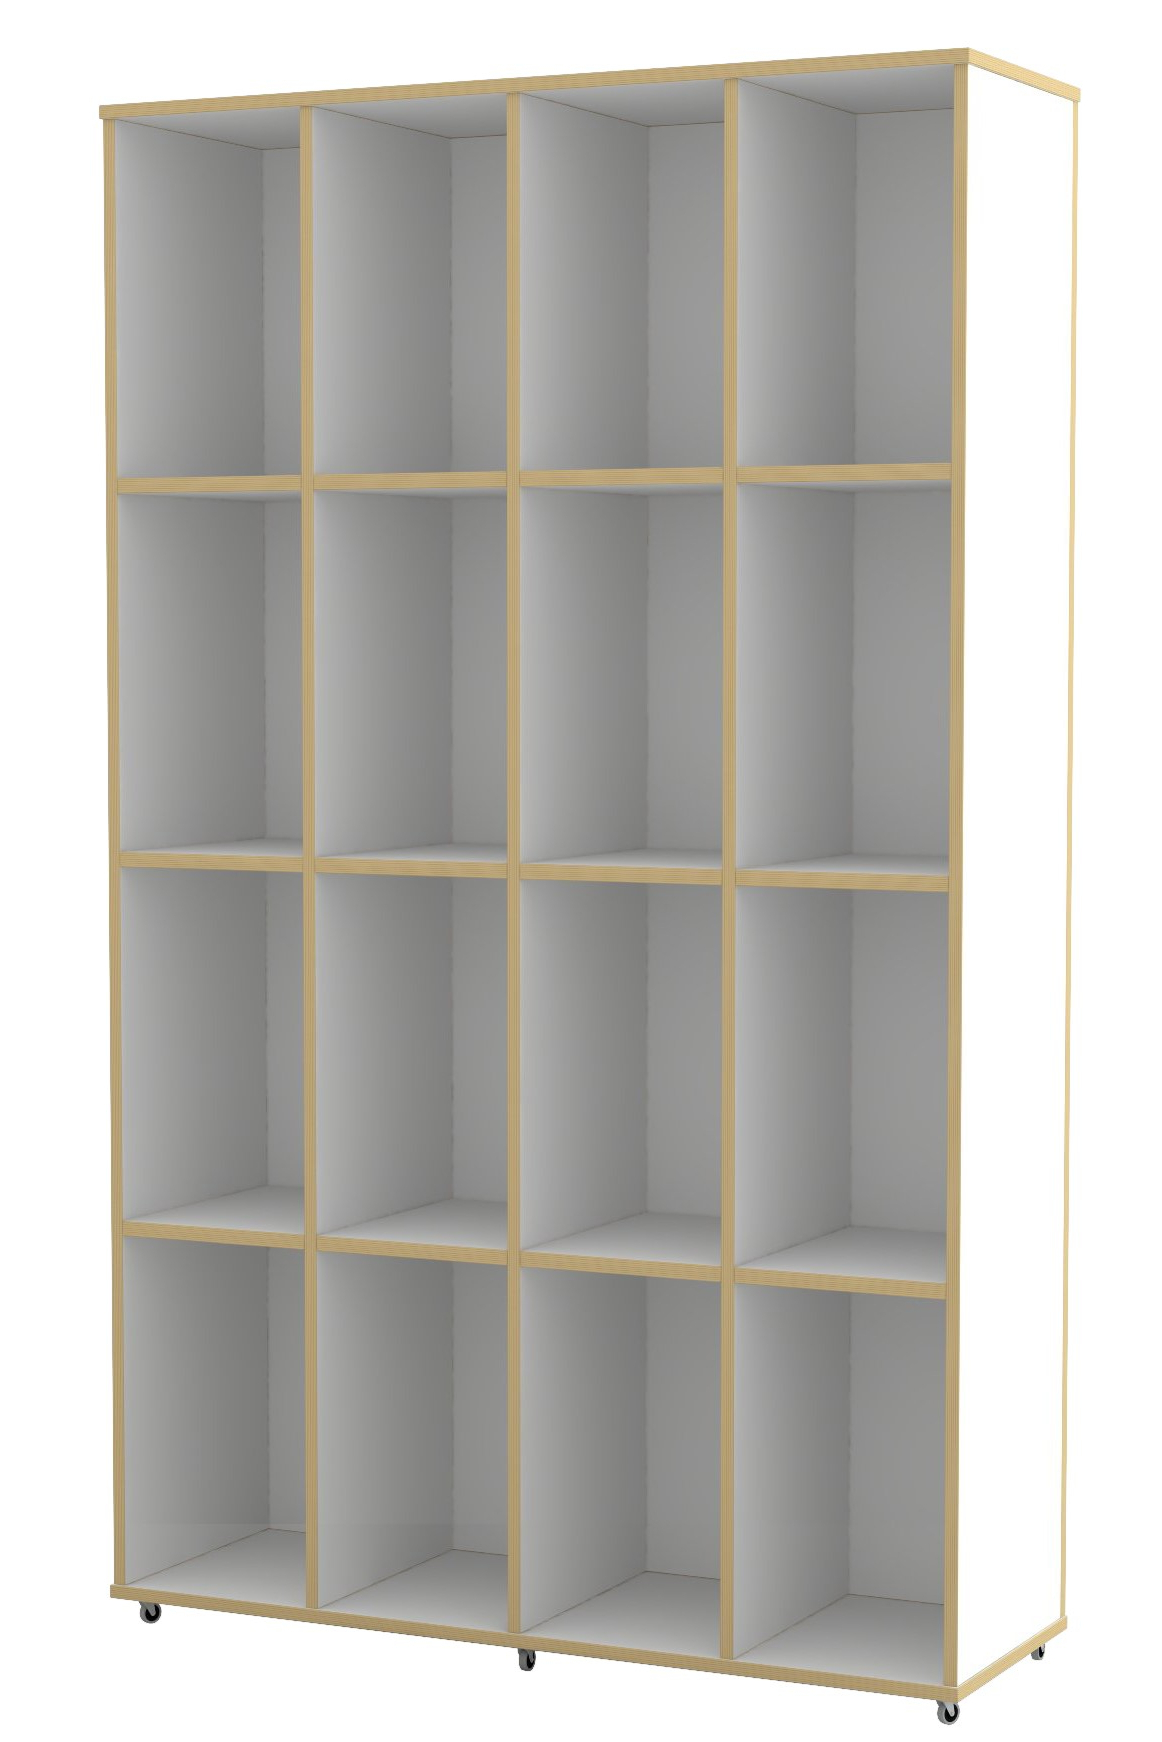 Class Regarding Most Up To Date Classroom Cubby Standard Bookcases (Gallery 8 of 20)